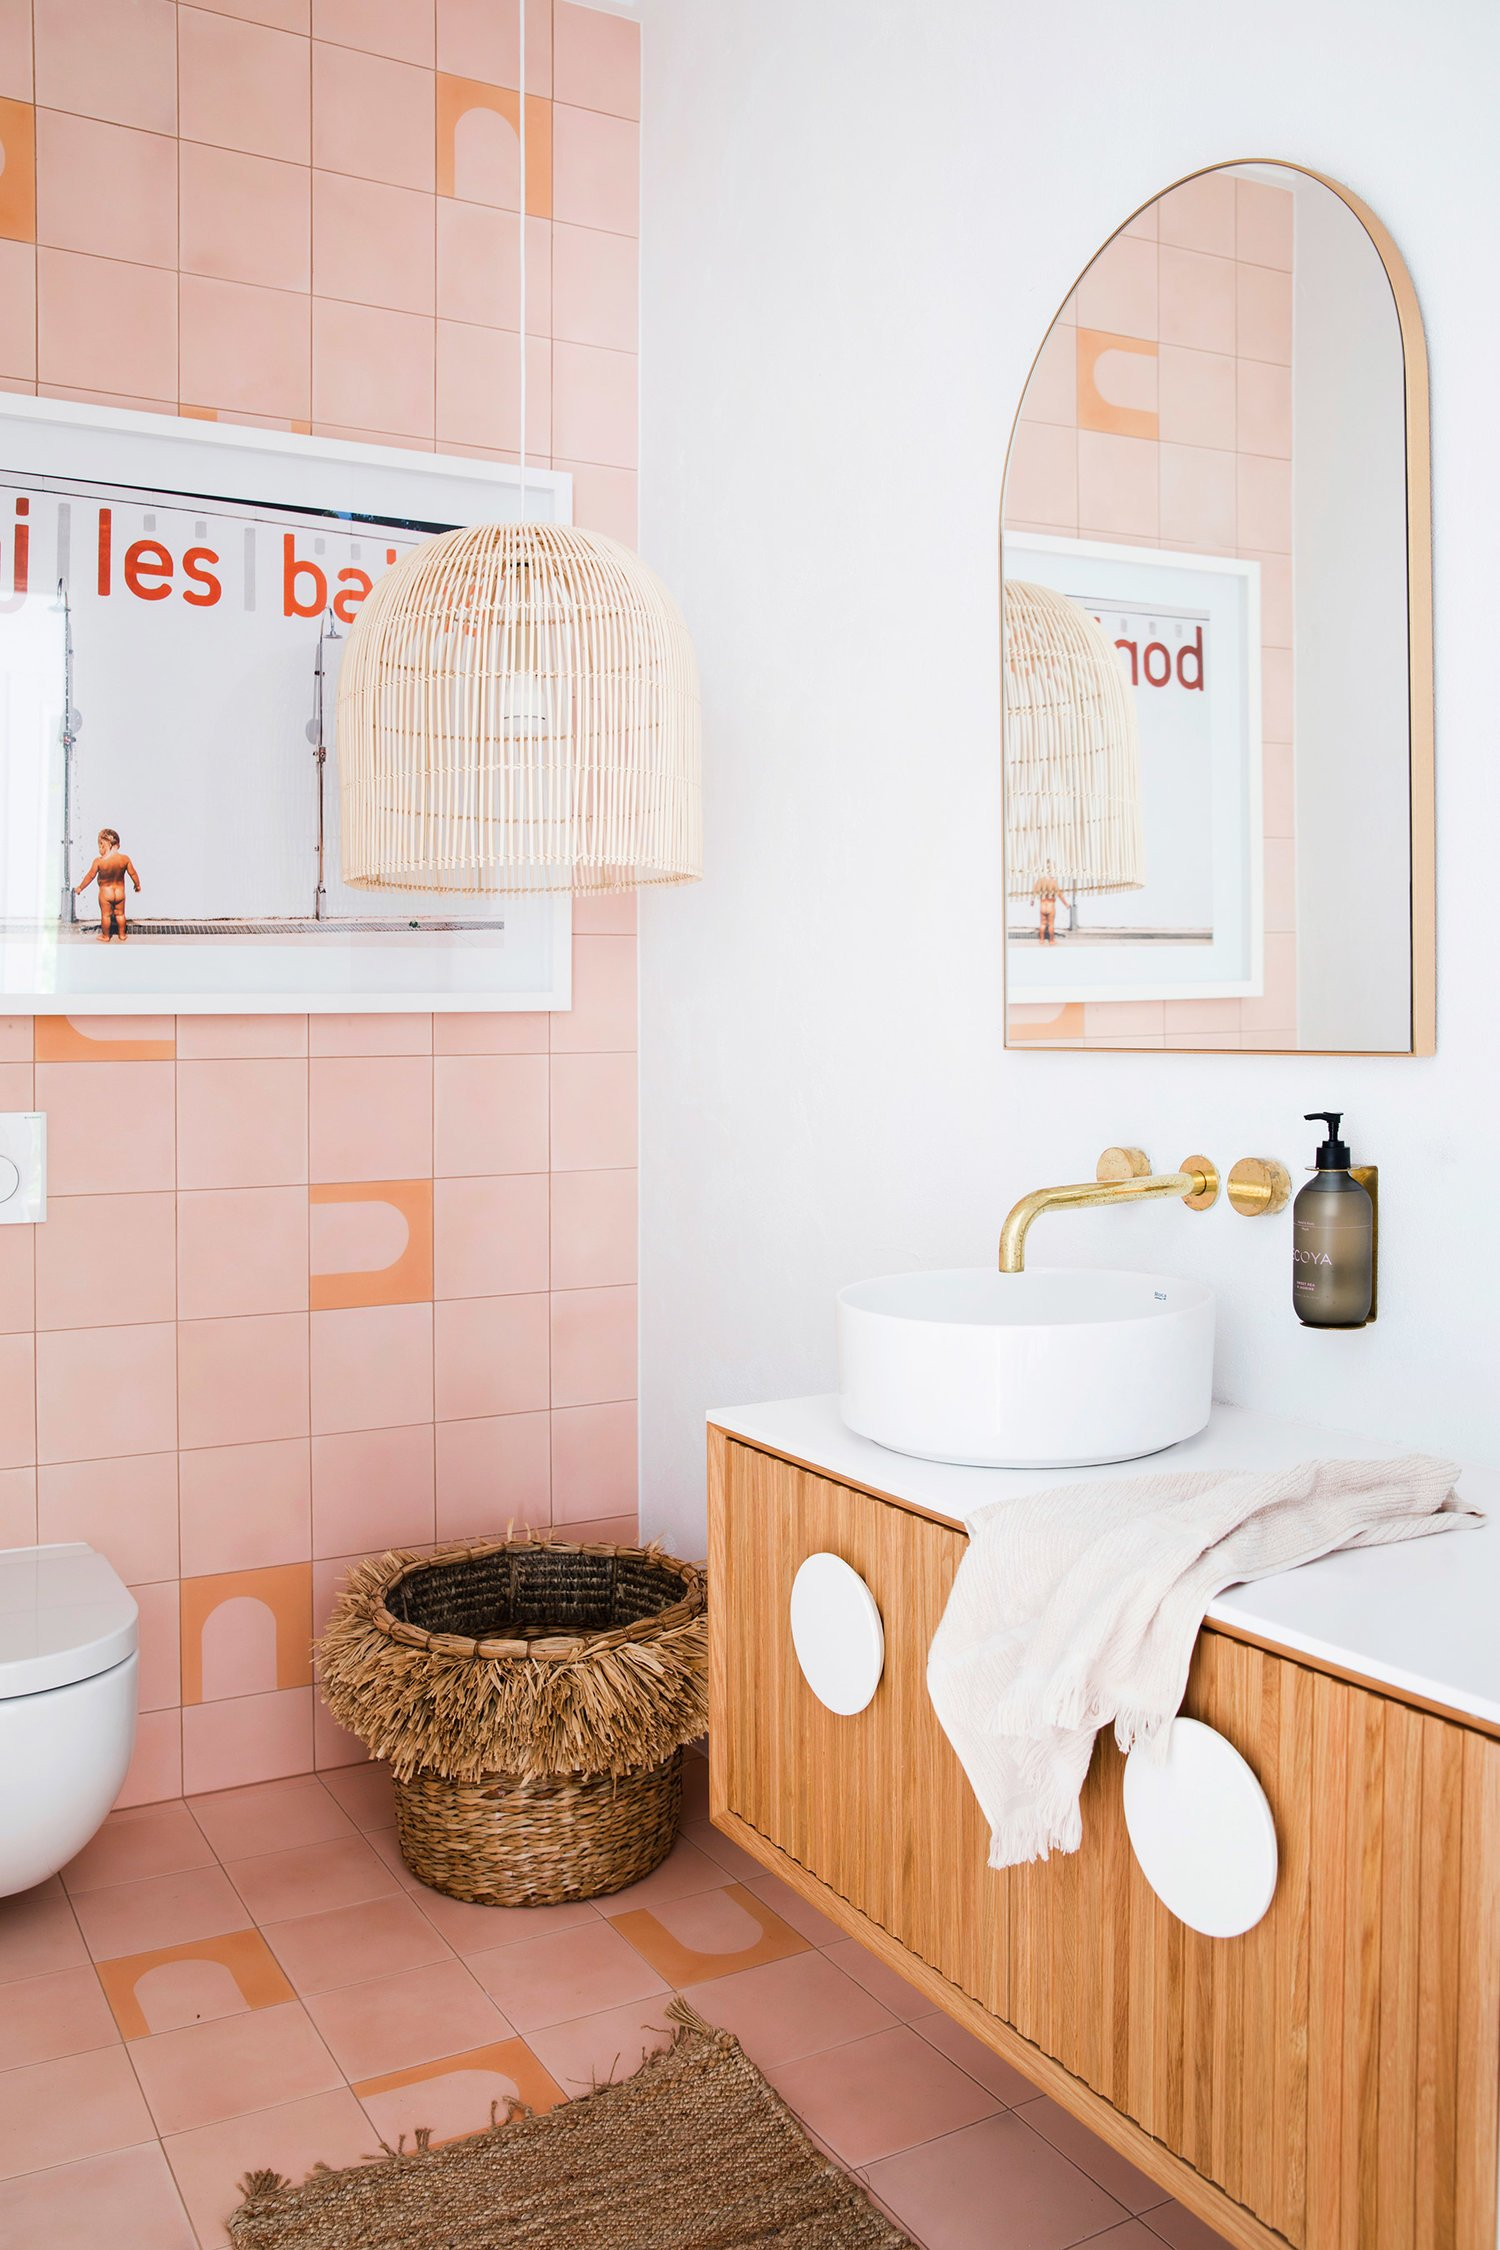 Look at this bathroom from Three Bird Renovations. The tile, the mirror, the light fixture? It's all so good. #arch #designtrend #interiors #organicmodern #bathroom #archmirror #pinktile #pinkbathroom #modernbathroom